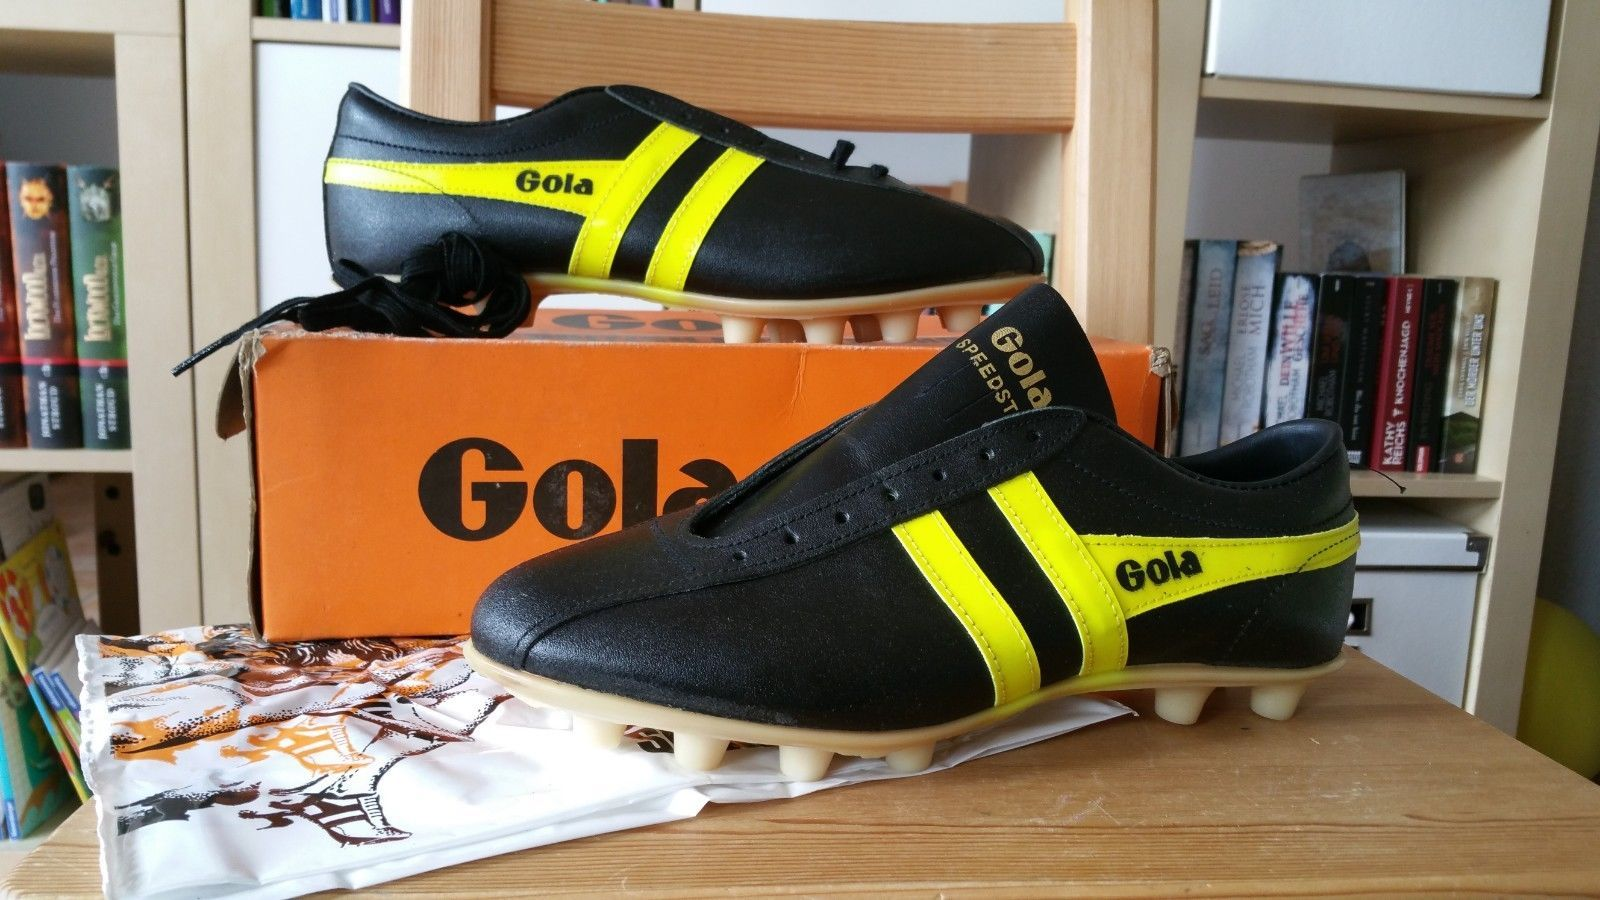 hot sale online 11741 f2389 ... Gola Speedster Vintage 70s Made in England Fussball Schuhe 7 17  Gola  Boots ...